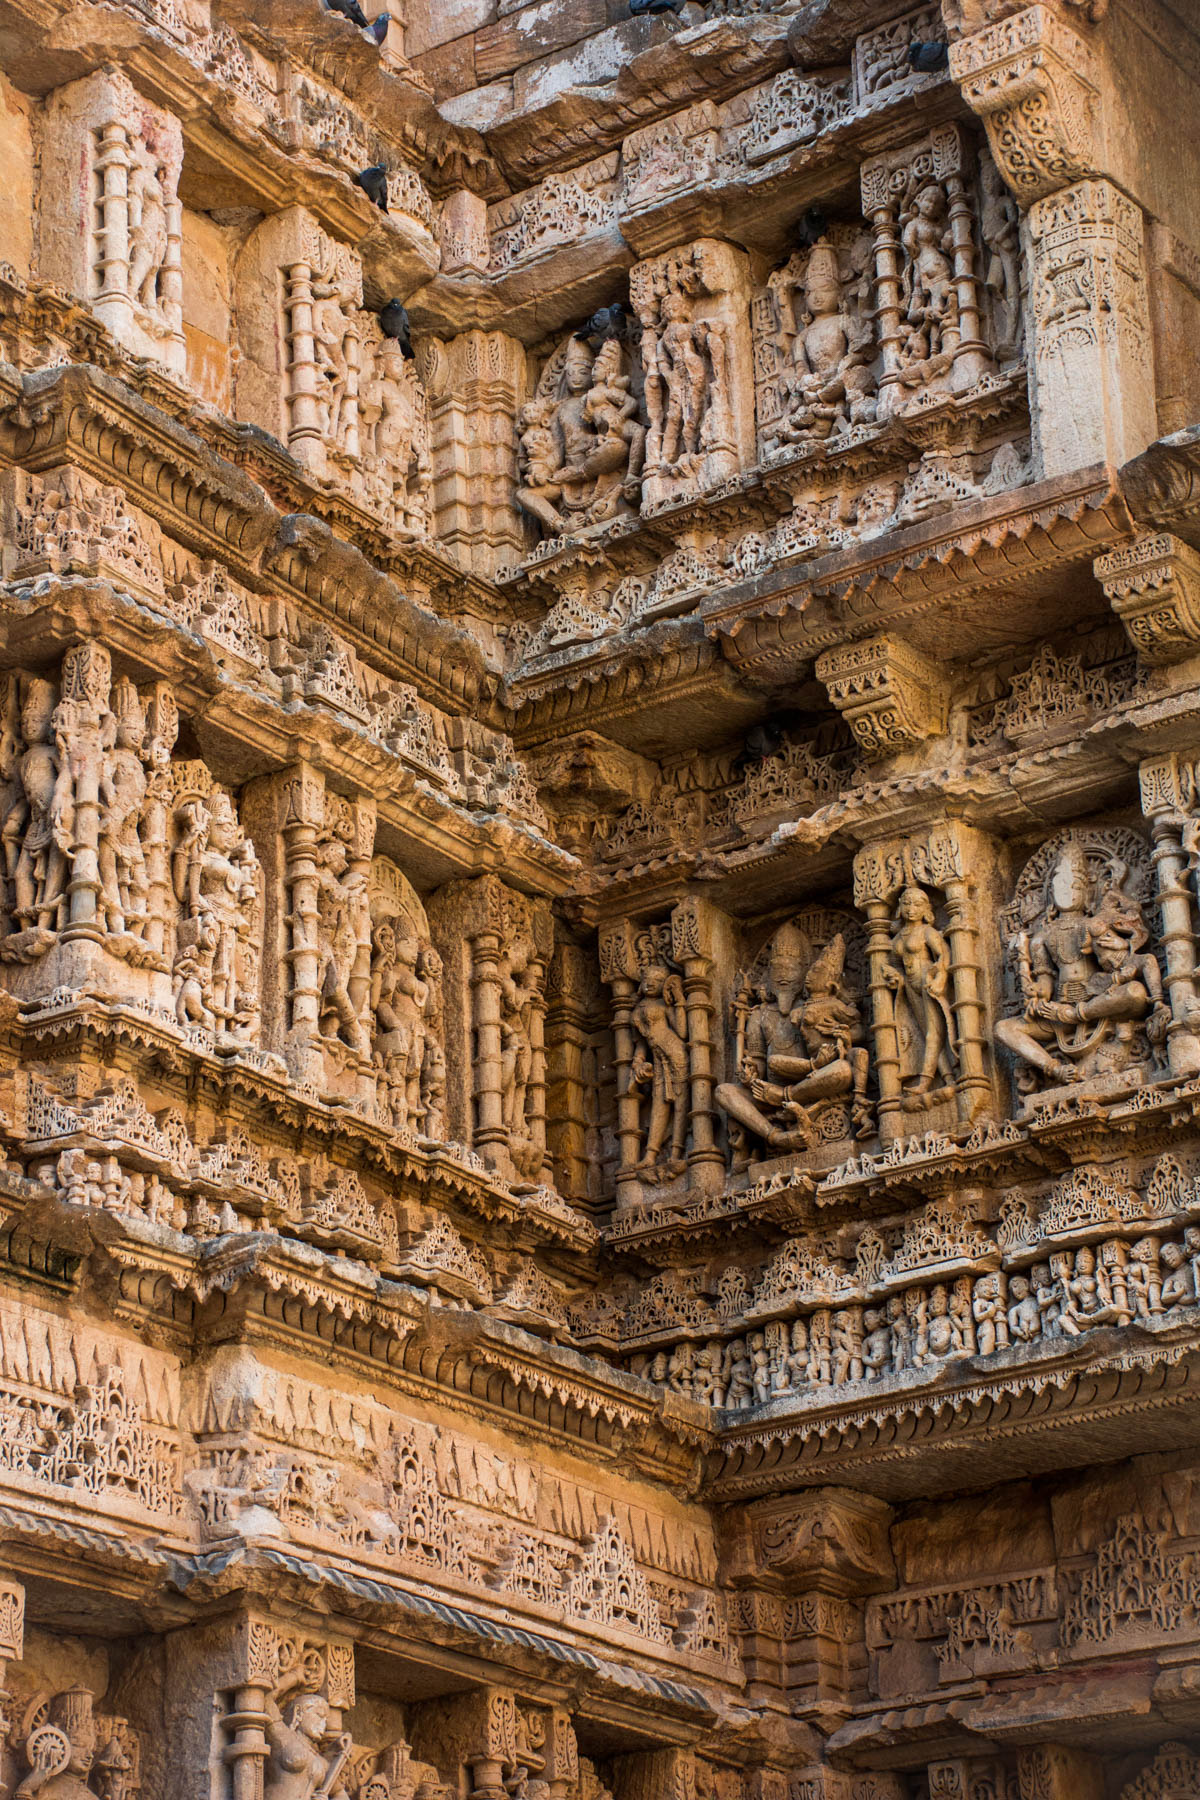 Carved details in Rani Ki Vav stepwell, one of India's most beautiful stepwells in Patan, Gujarat state.